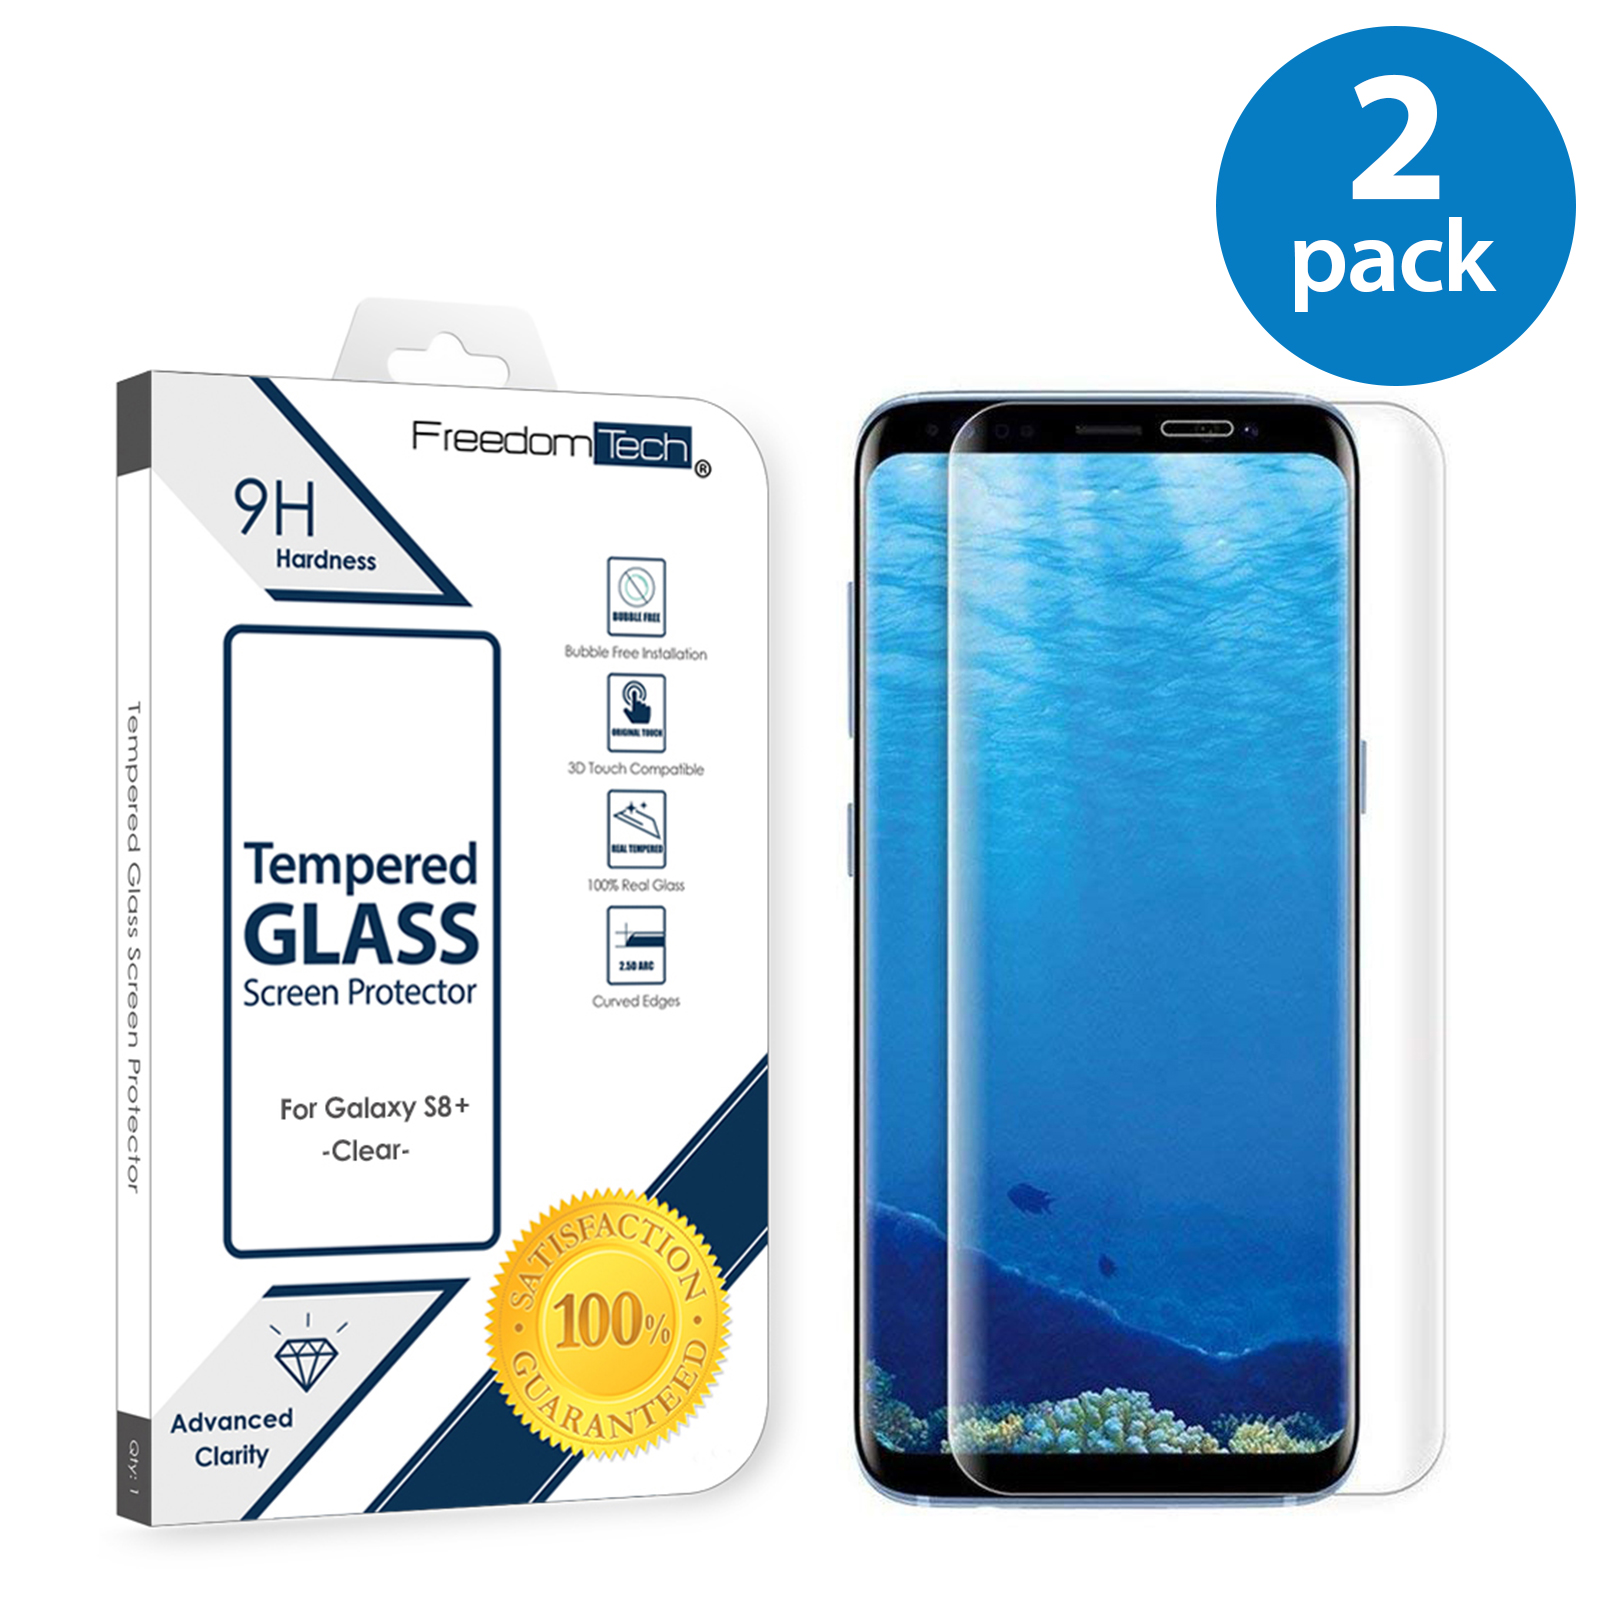 2x Samsung Galaxy S8 Plus Screen Protector Glass Full Cover 3D Curved Case Friendly Screen Protector Tempered Glass for Samsung Galaxy S8 Plus Clear